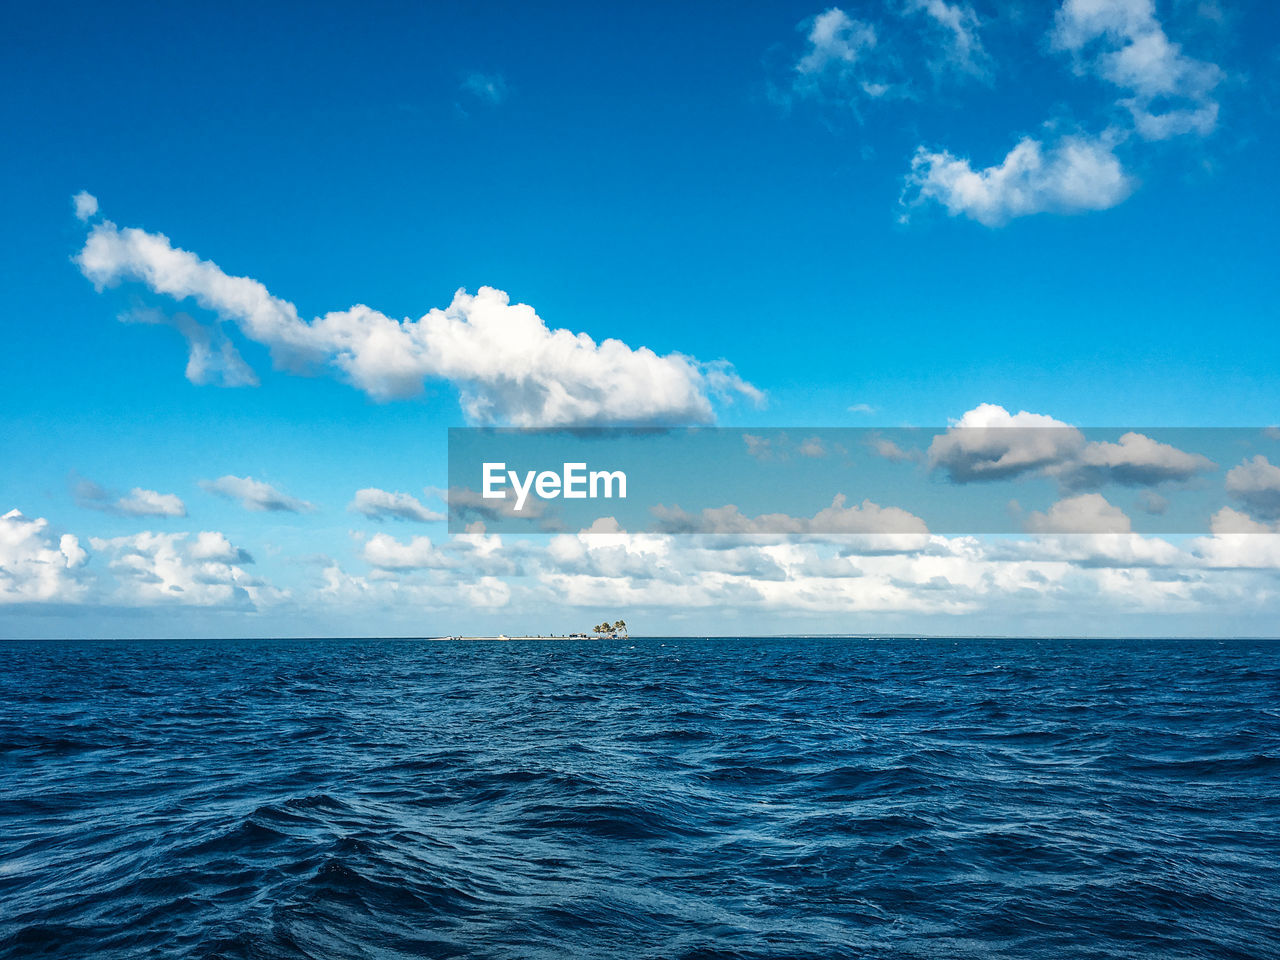 sky, sea, horizon over water, water, scenics - nature, cloud - sky, horizon, beauty in nature, blue, tranquil scene, waterfront, tranquility, day, nature, no people, idyllic, seascape, nautical vessel, non-urban scene, outdoors